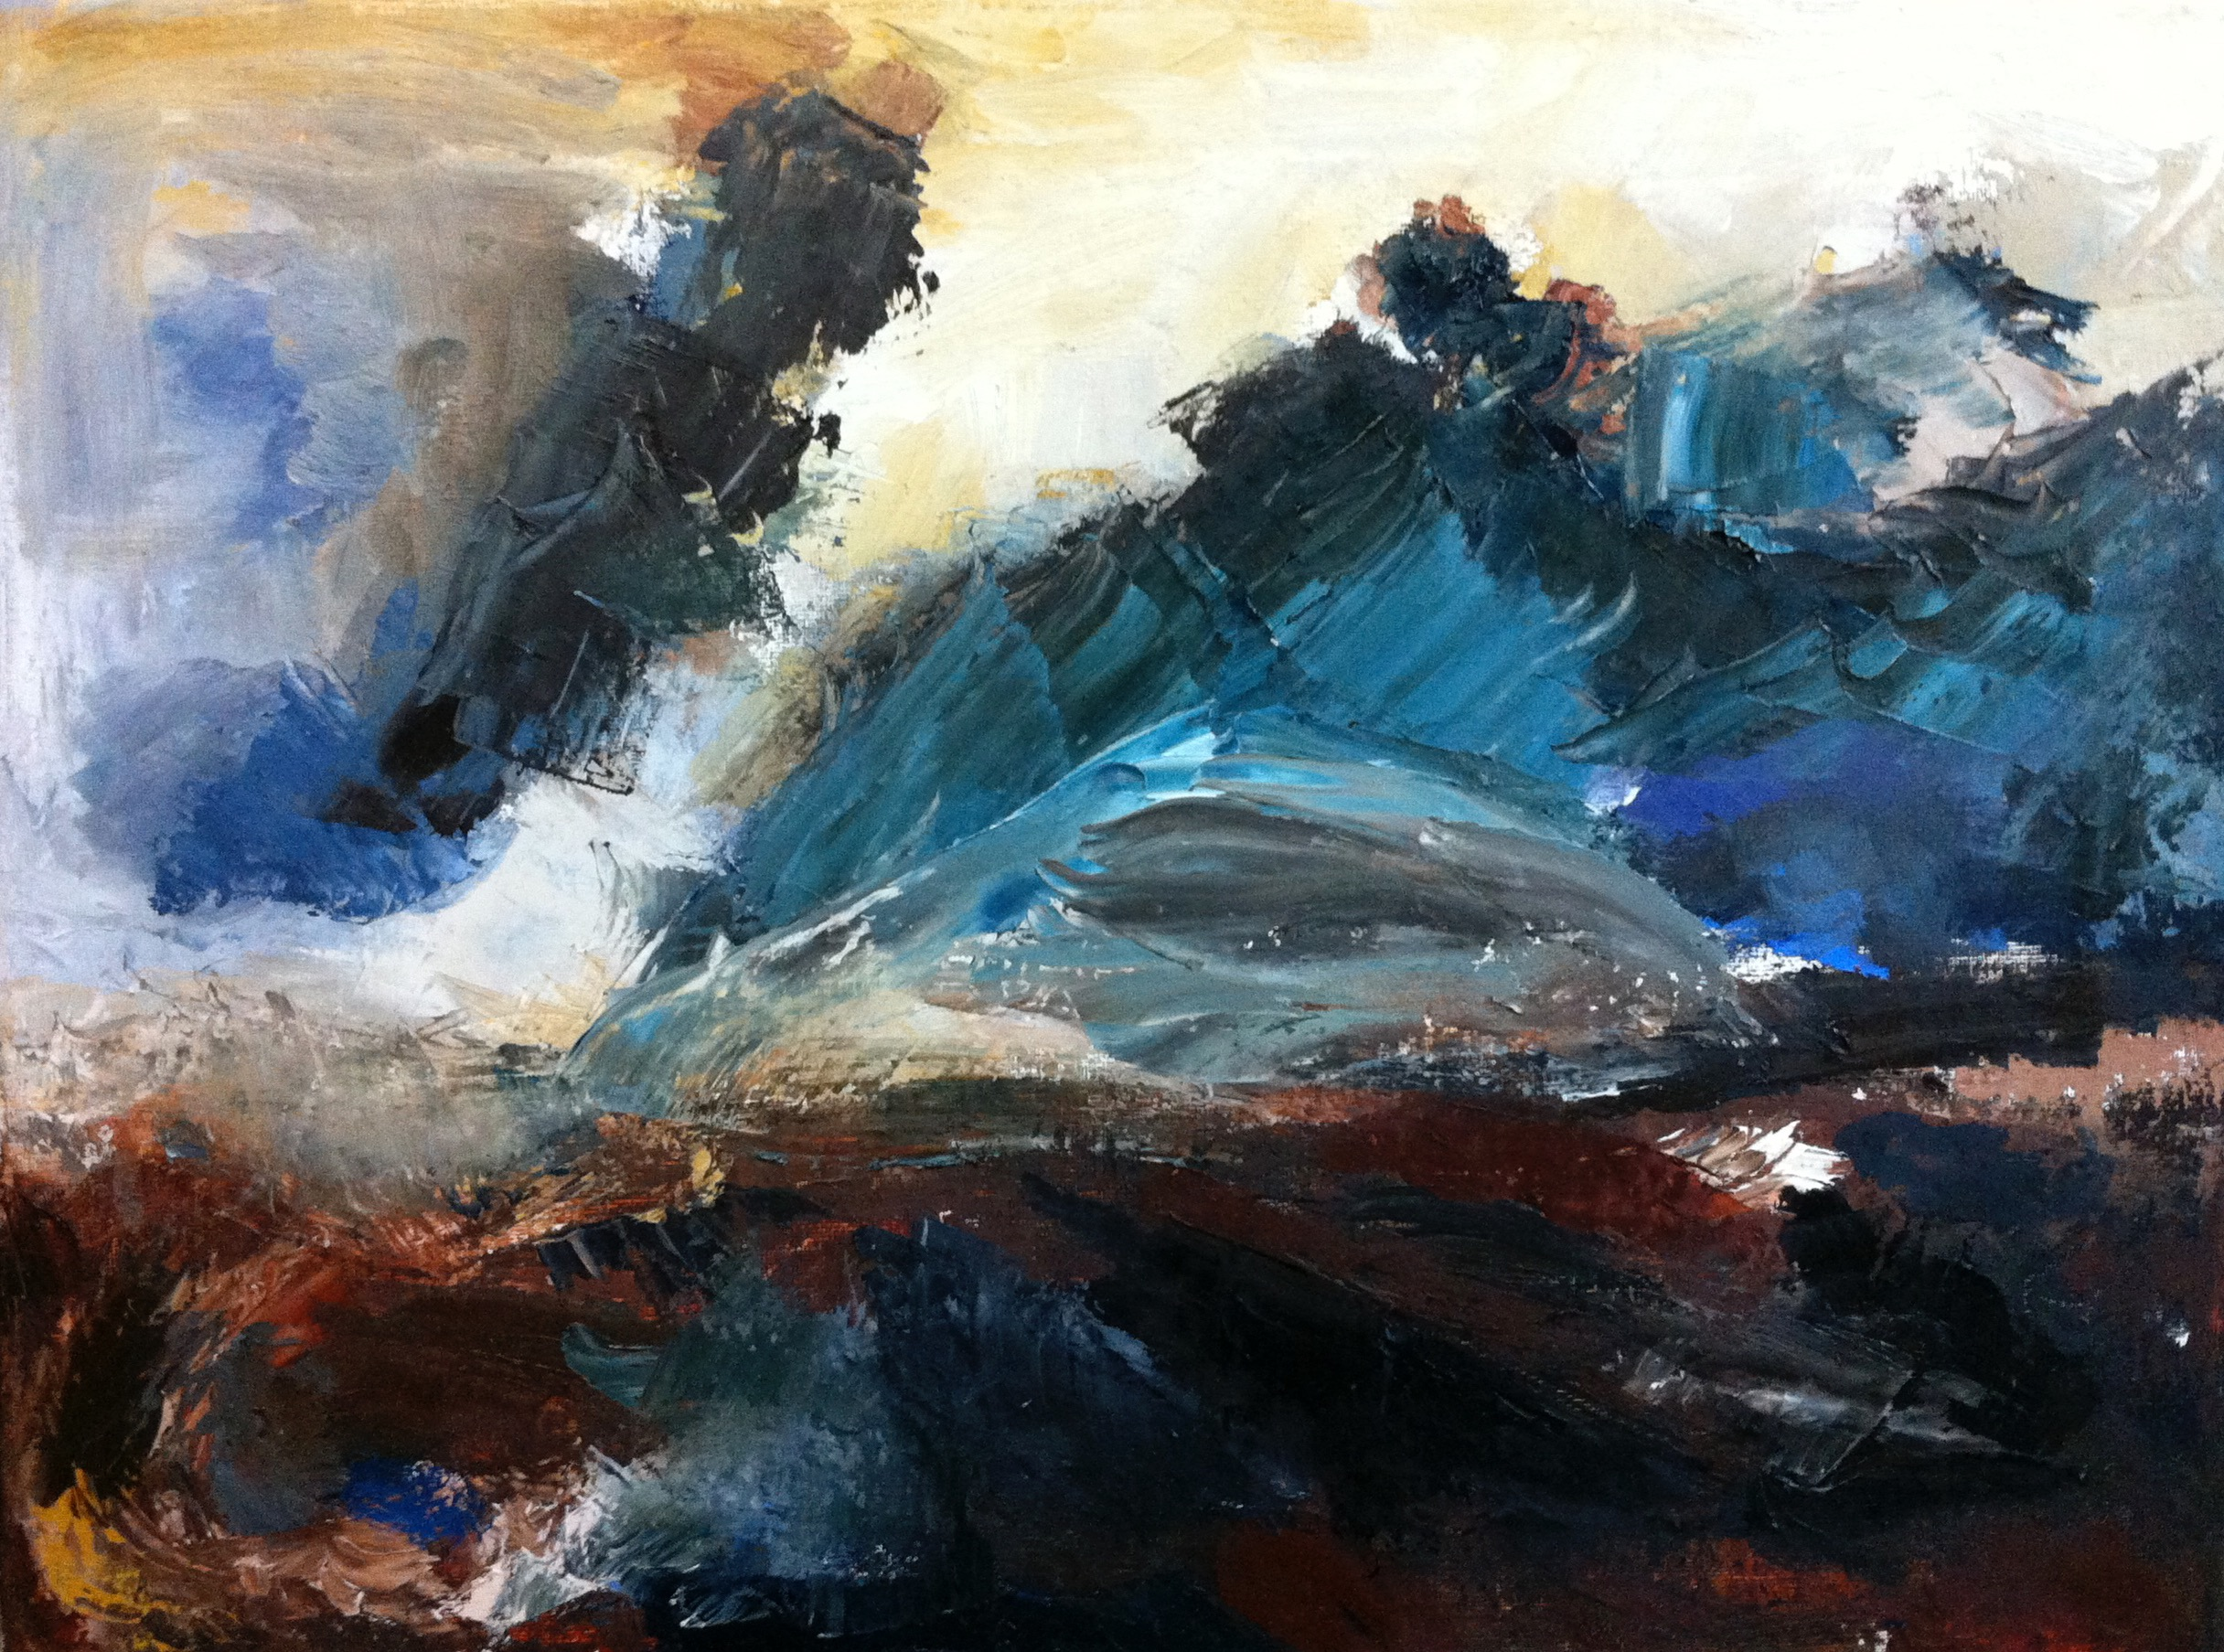 """Study of Turner's """"Rough Sea with Wreckage"""""""